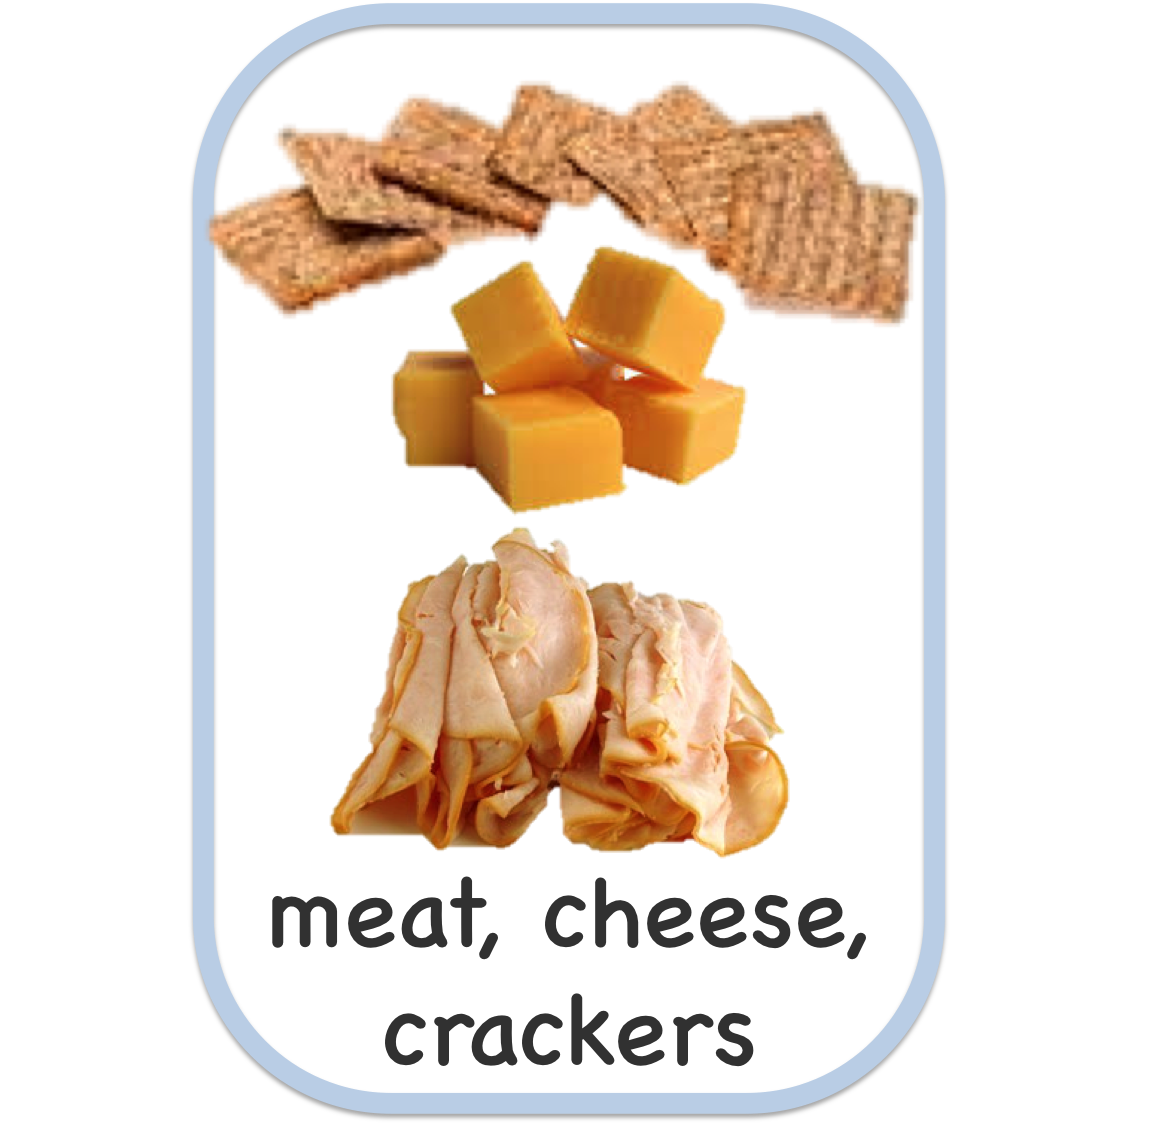 meatcheese.png